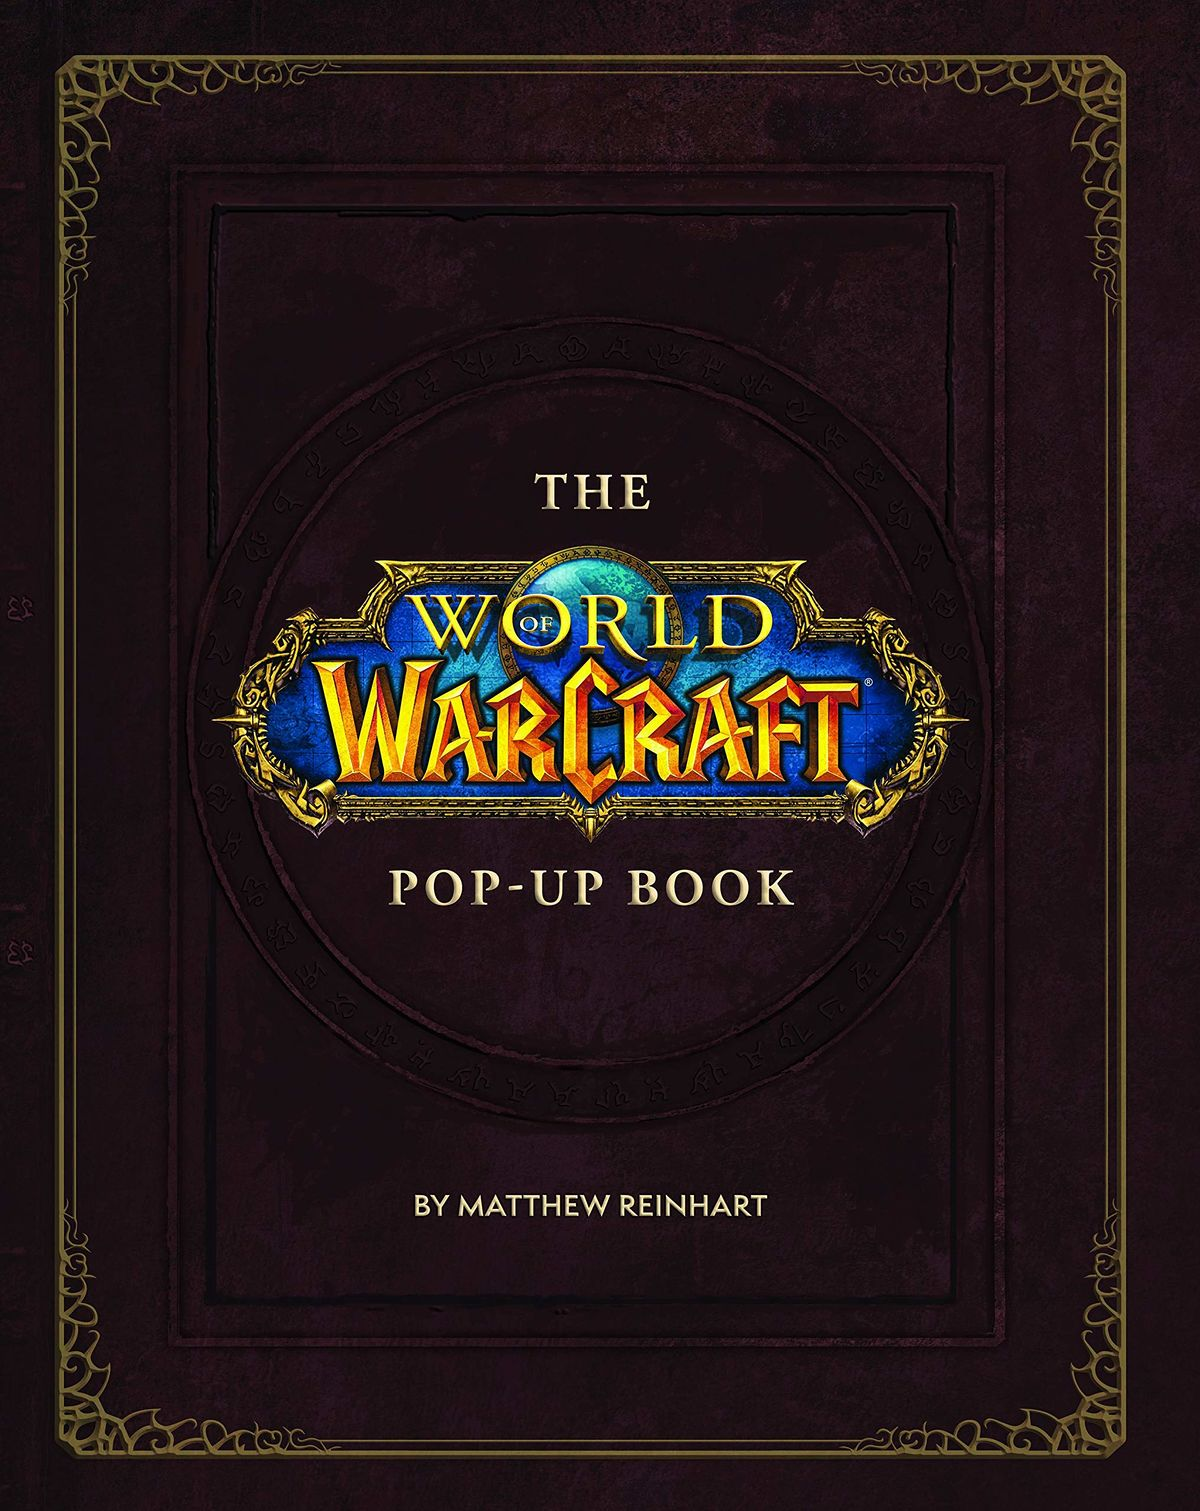 Pop Up Book Cover The World Of Warcraft Pop Up Book Wowpedia Your Wiki